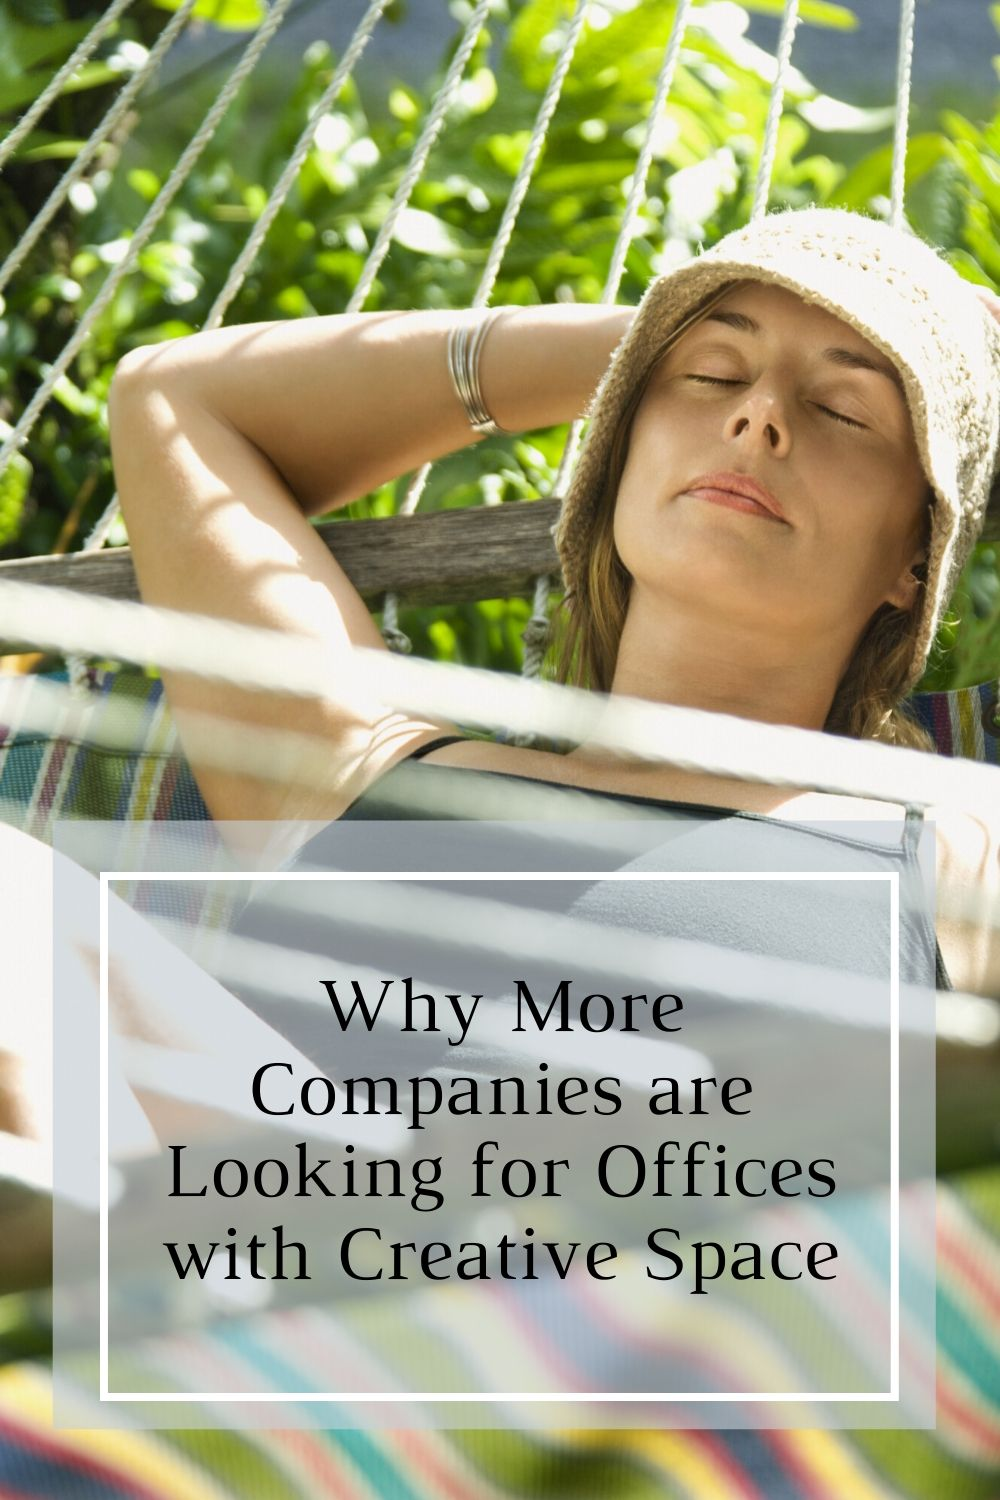 Why More Companies are Looking for Offices with Creative Space